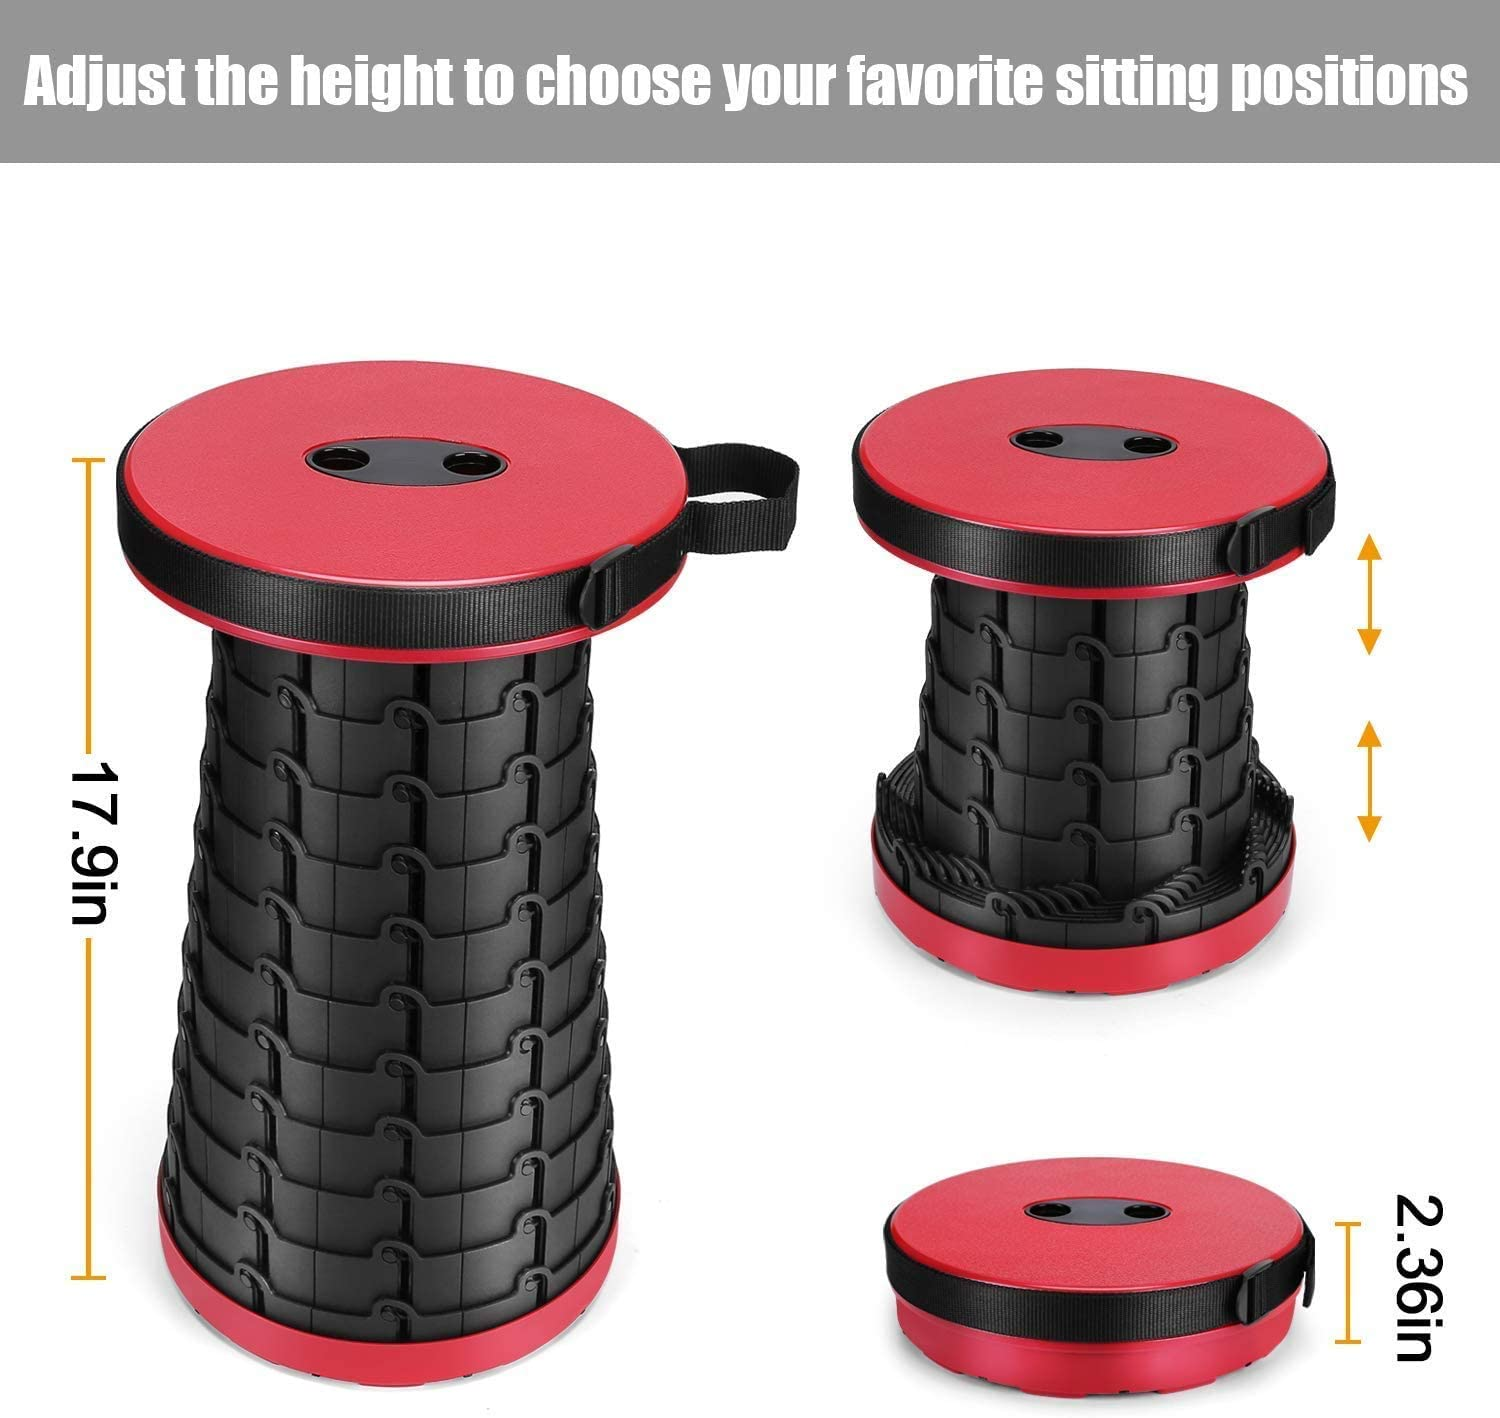 Portable Telescoping Stool Folding Camping Stool Seat for Fishing Hiking Traveling Outdoor Activities Camping//Fishing//Hiking//Travel//BBQ//Garden Max Load 330 lbs